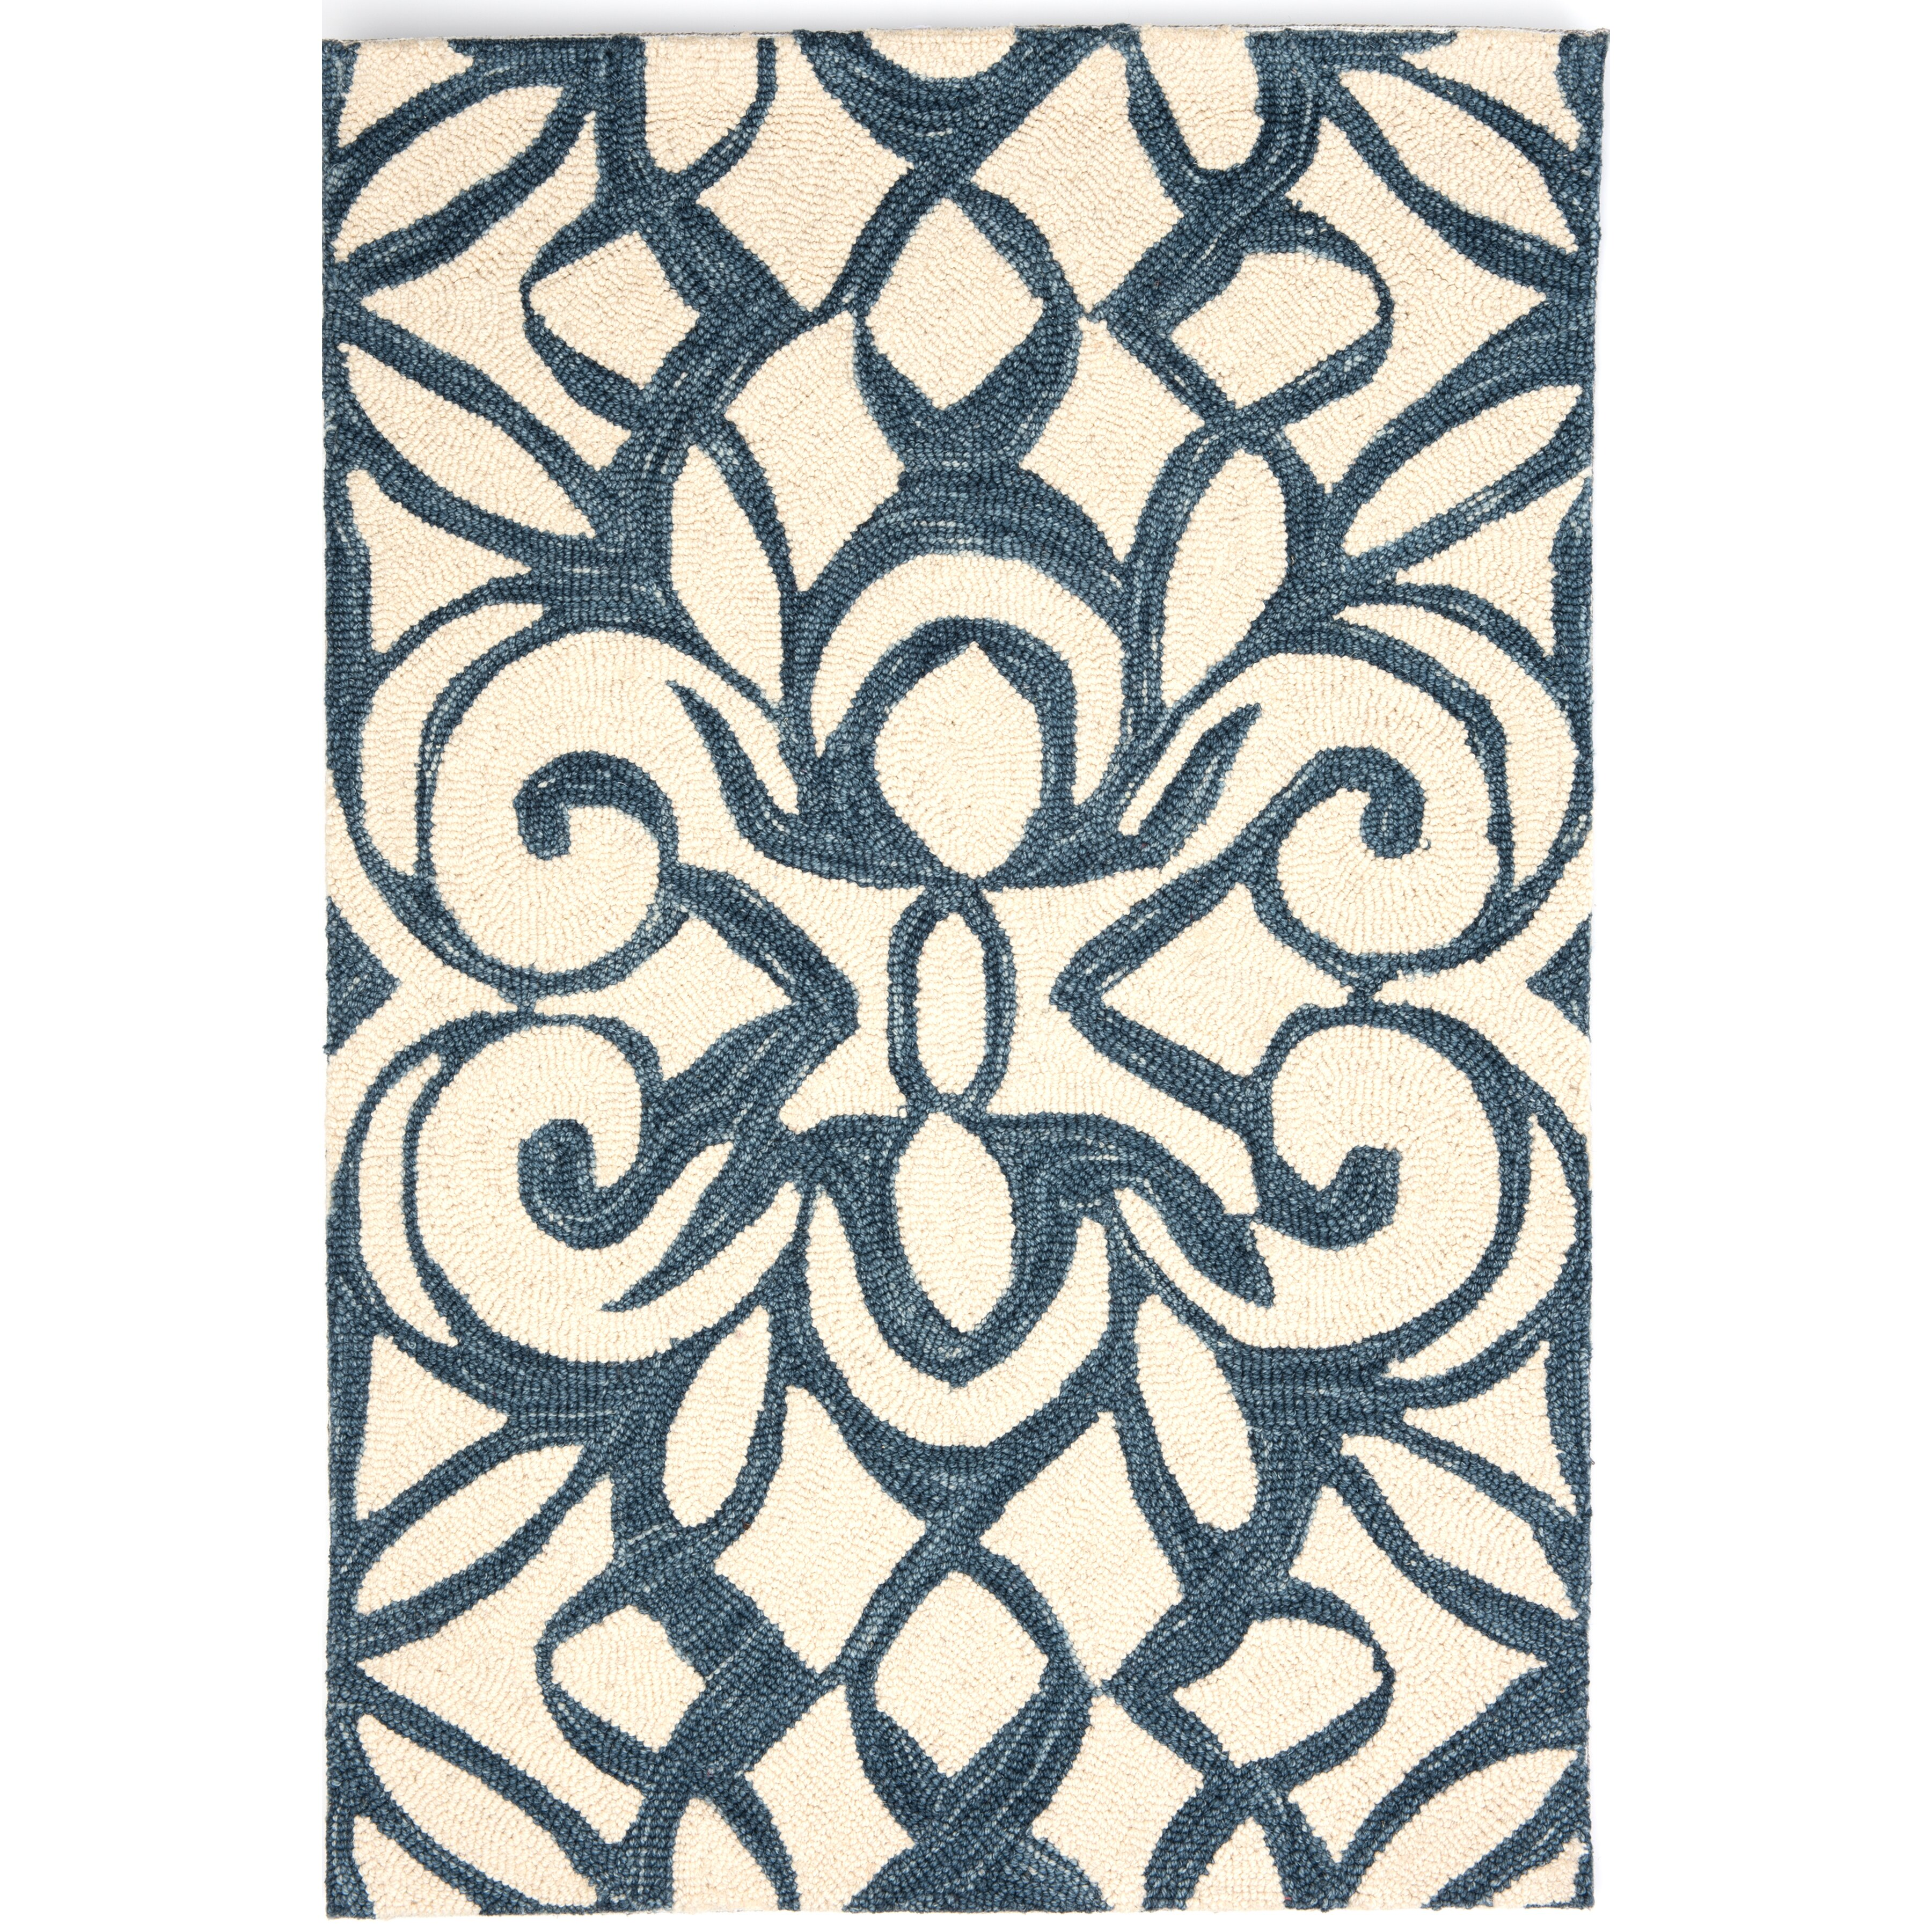 Dash and albert rugs hooked blue white area rug reviews for Dash and albert wool rugs